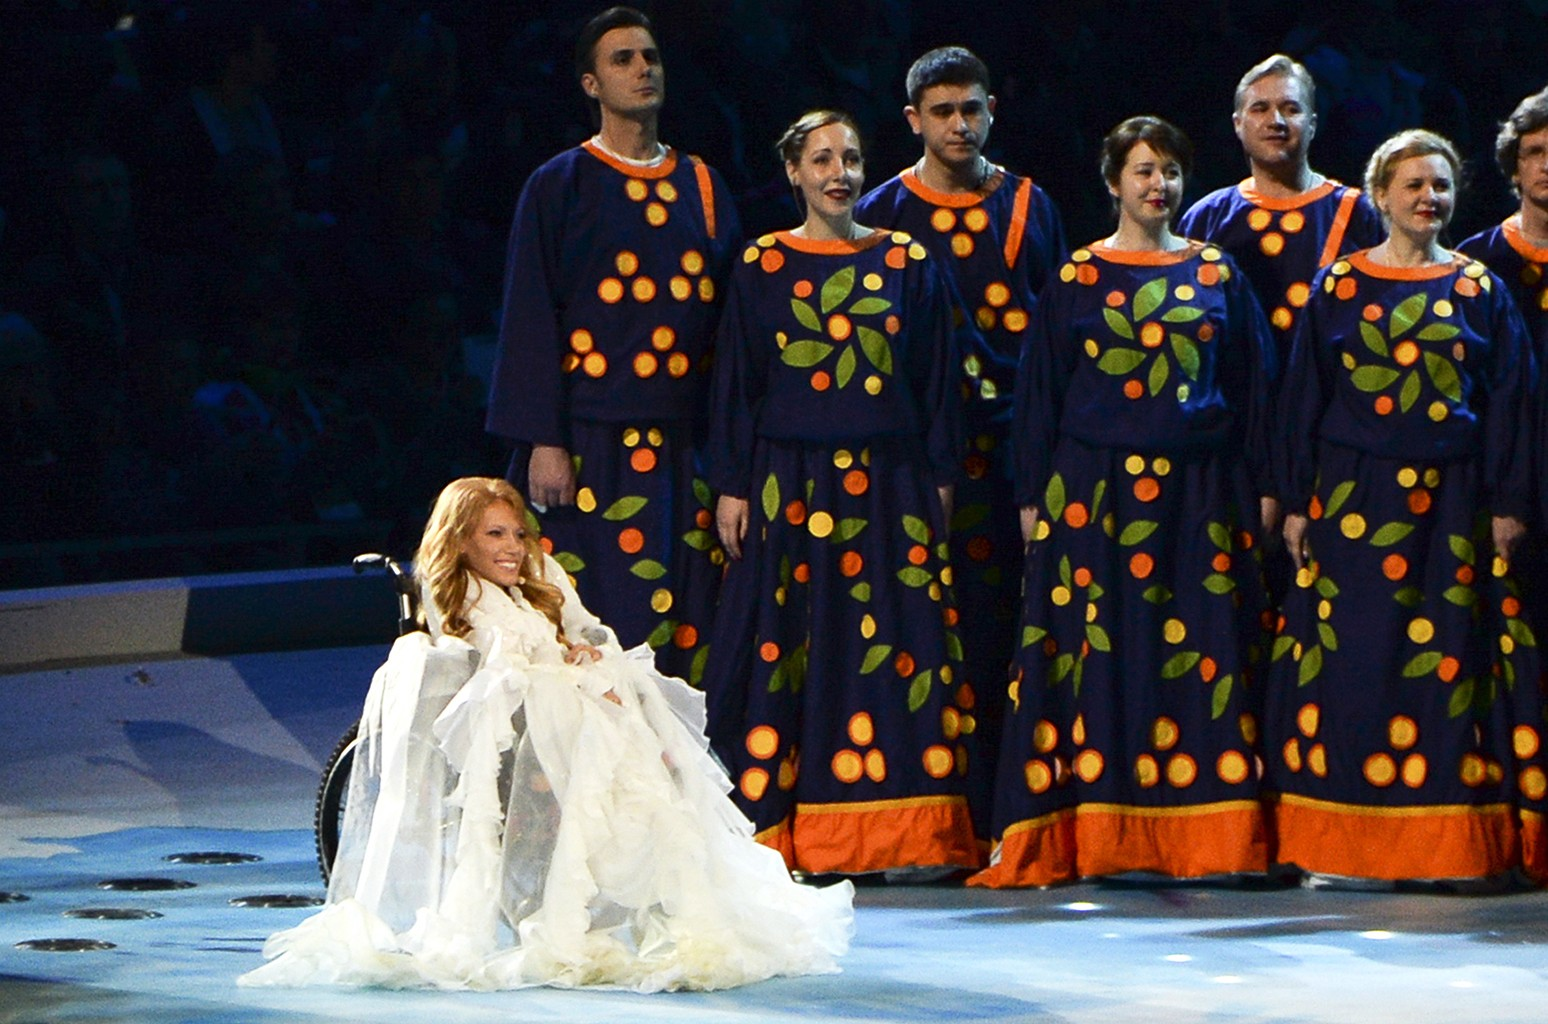 Yulia Samoilova during the opening ceremony of the 2014 Paralympic Games in Sochi, Russia on March 7, 2014.